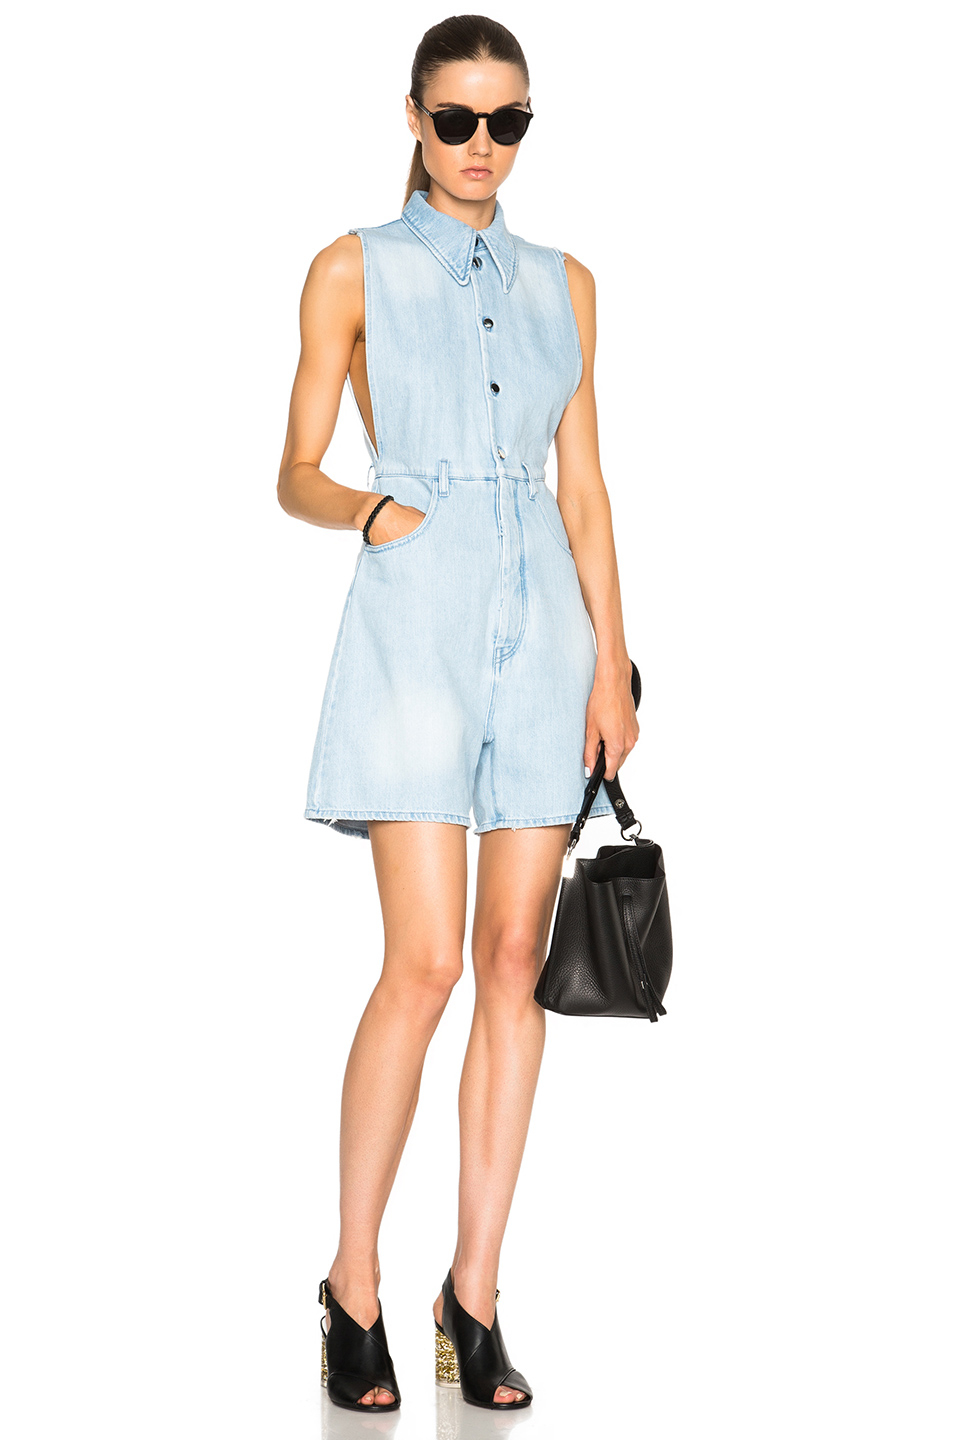 Stone Washed Romper in Blue Maison Martin Margiela Inexpensive Cheap Online Free Shipping Good Selling SYAHdXL